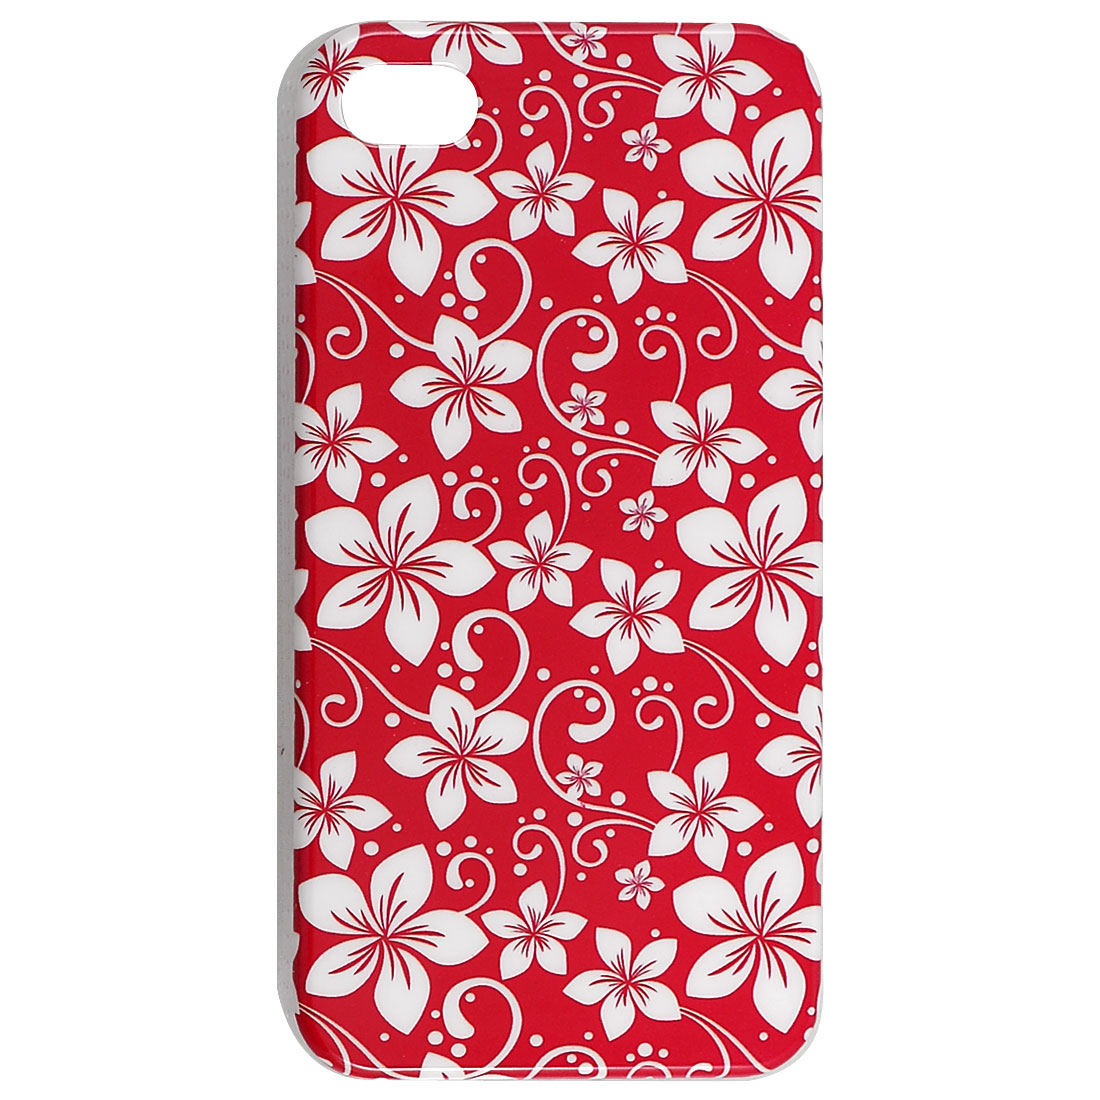 IMD White Flower Pattern Hard Plastic Back Case for iPhone 4 4G 4S